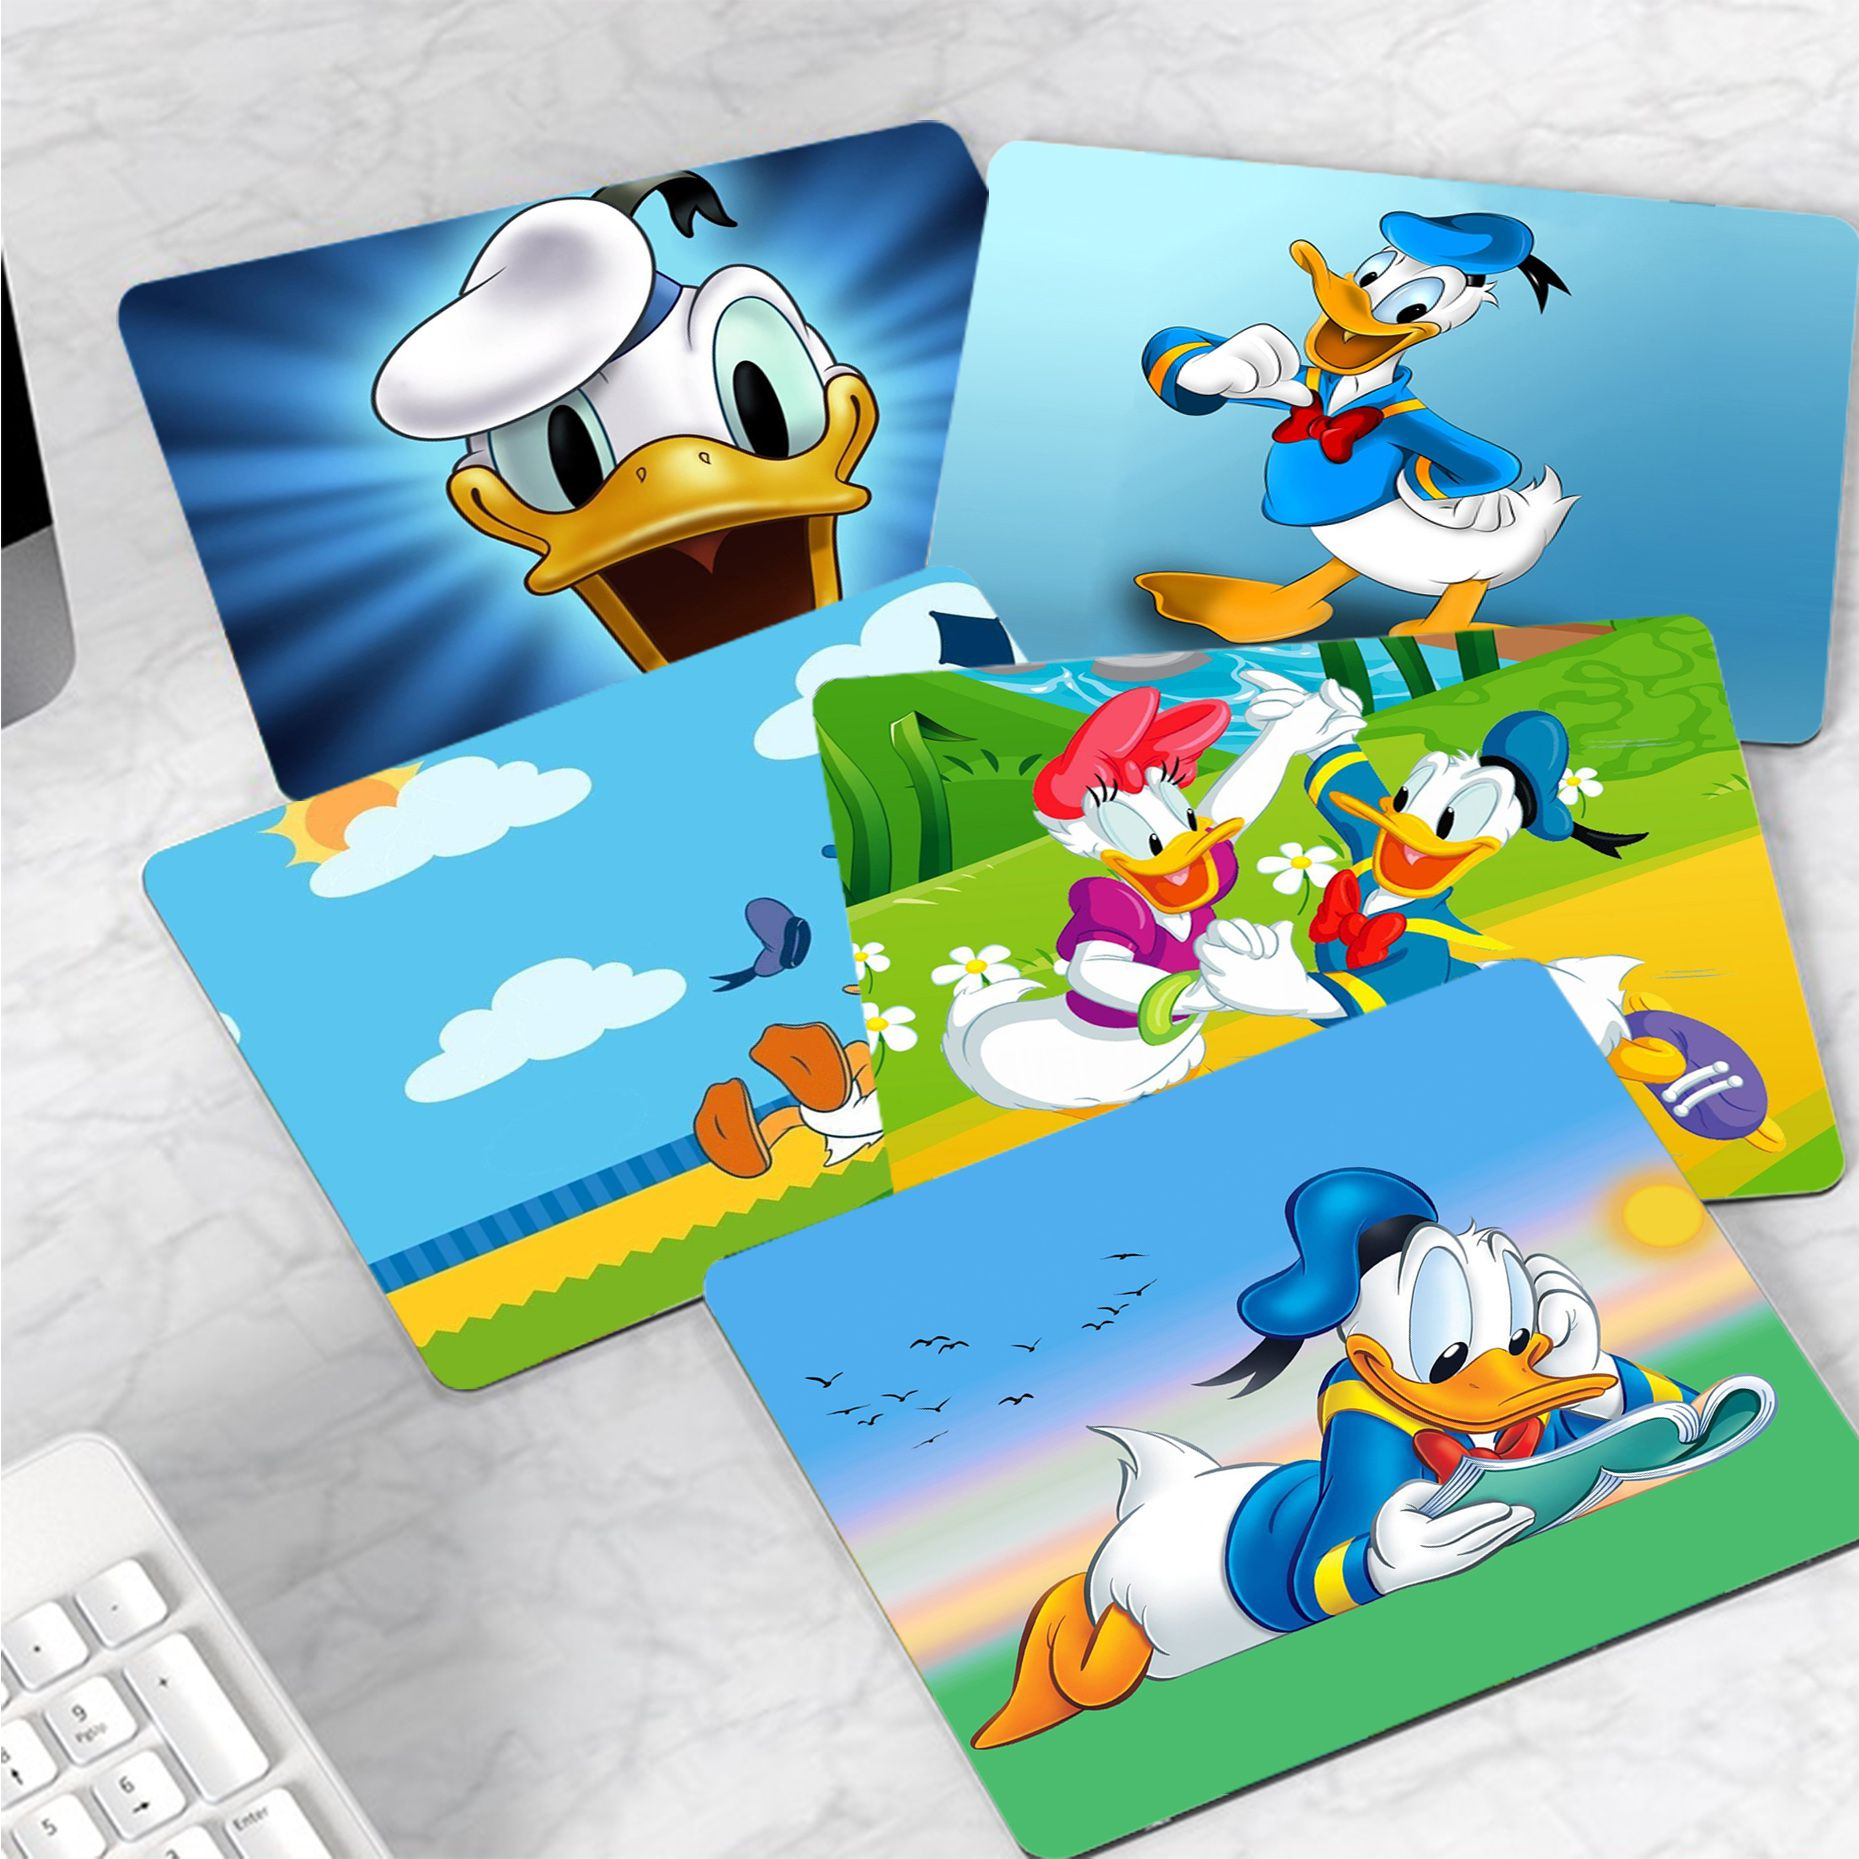 Disney Donald Duck Customized MousePads Computer Laptop Anime Mouse Mat Rubber PC Computer Gaming mouse pad maiya funny tie dye customized mousepads computer laptop anime mouse mat smooth writing pad desktops mate gaming mouse pad